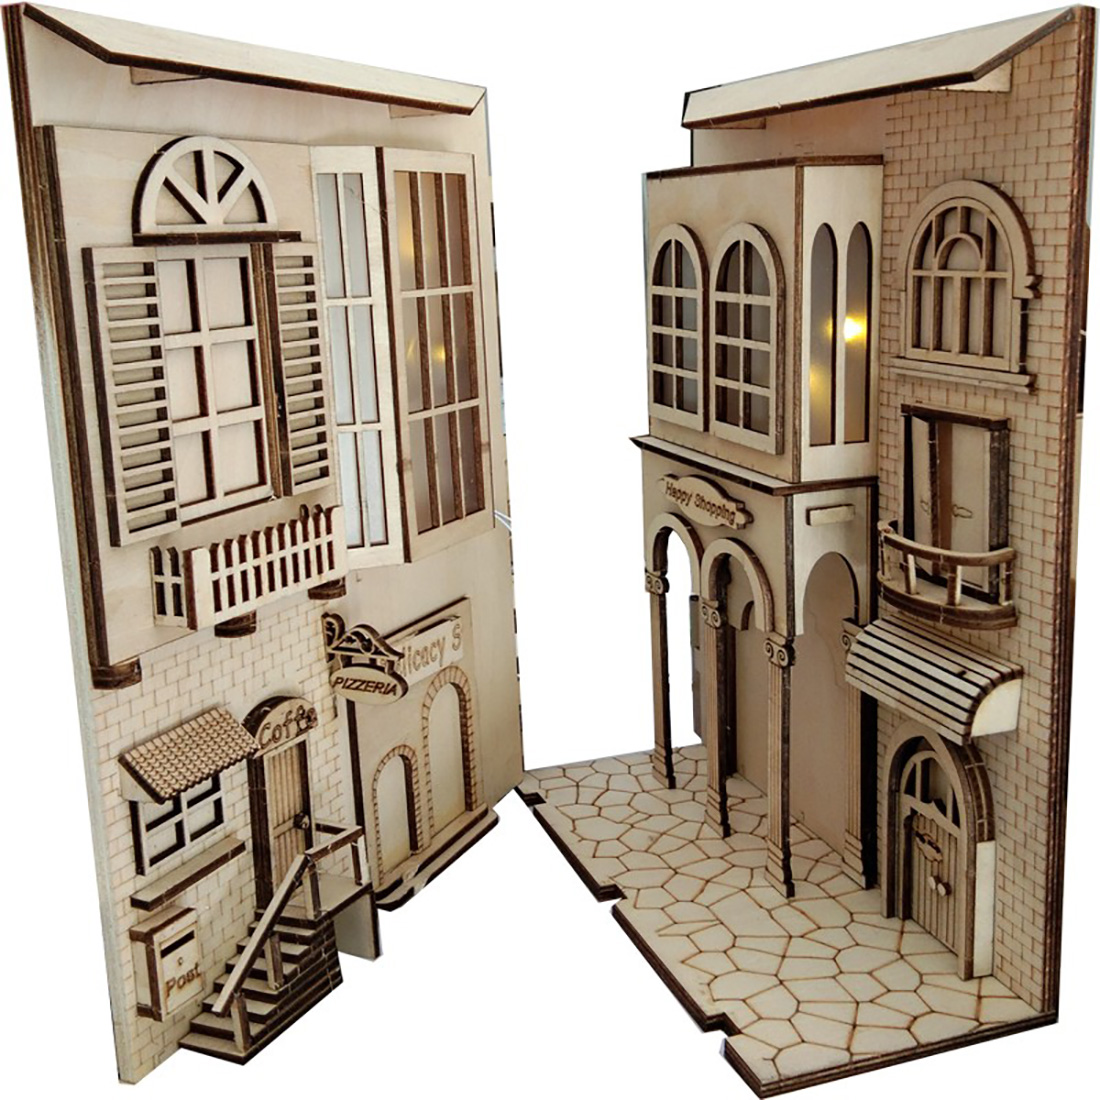 European Town 3D Miniature Book Nook